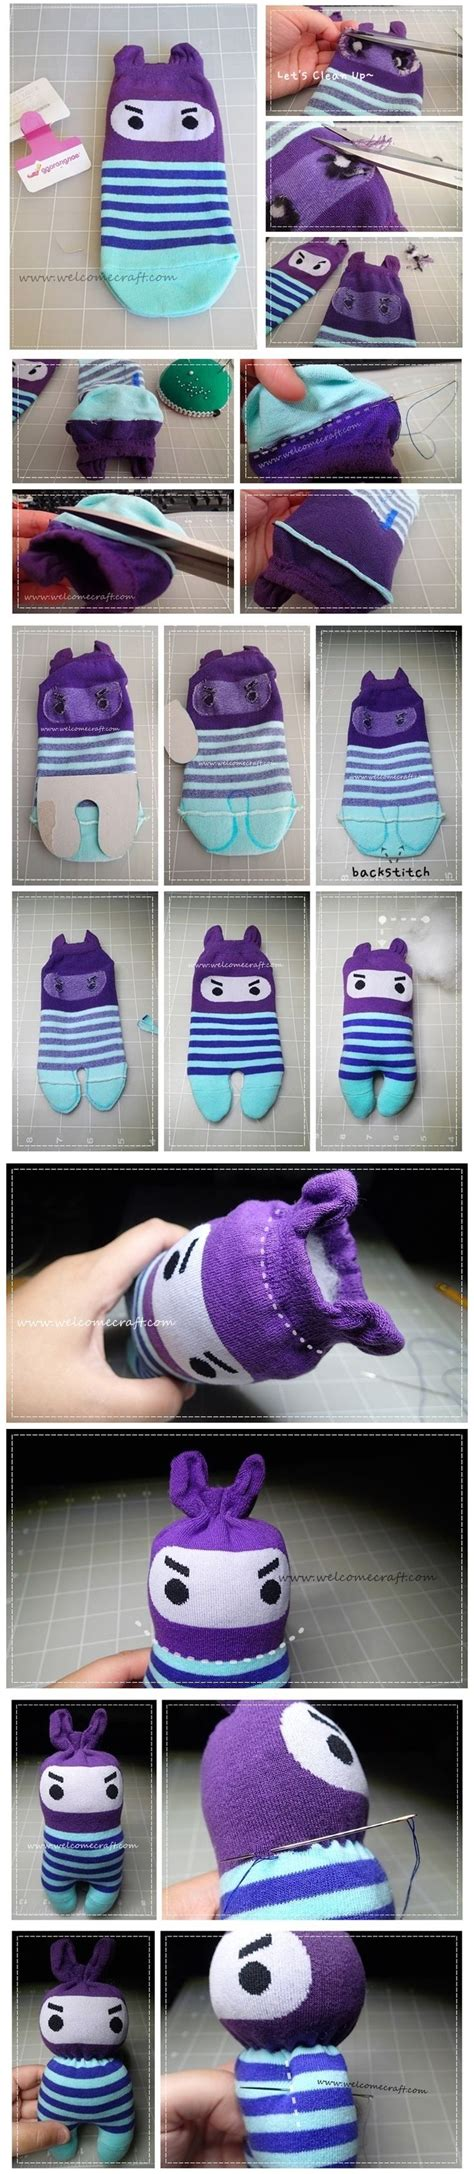 Kaos Bunny And Elephant 25 best ideas about sock dolls on diy doll